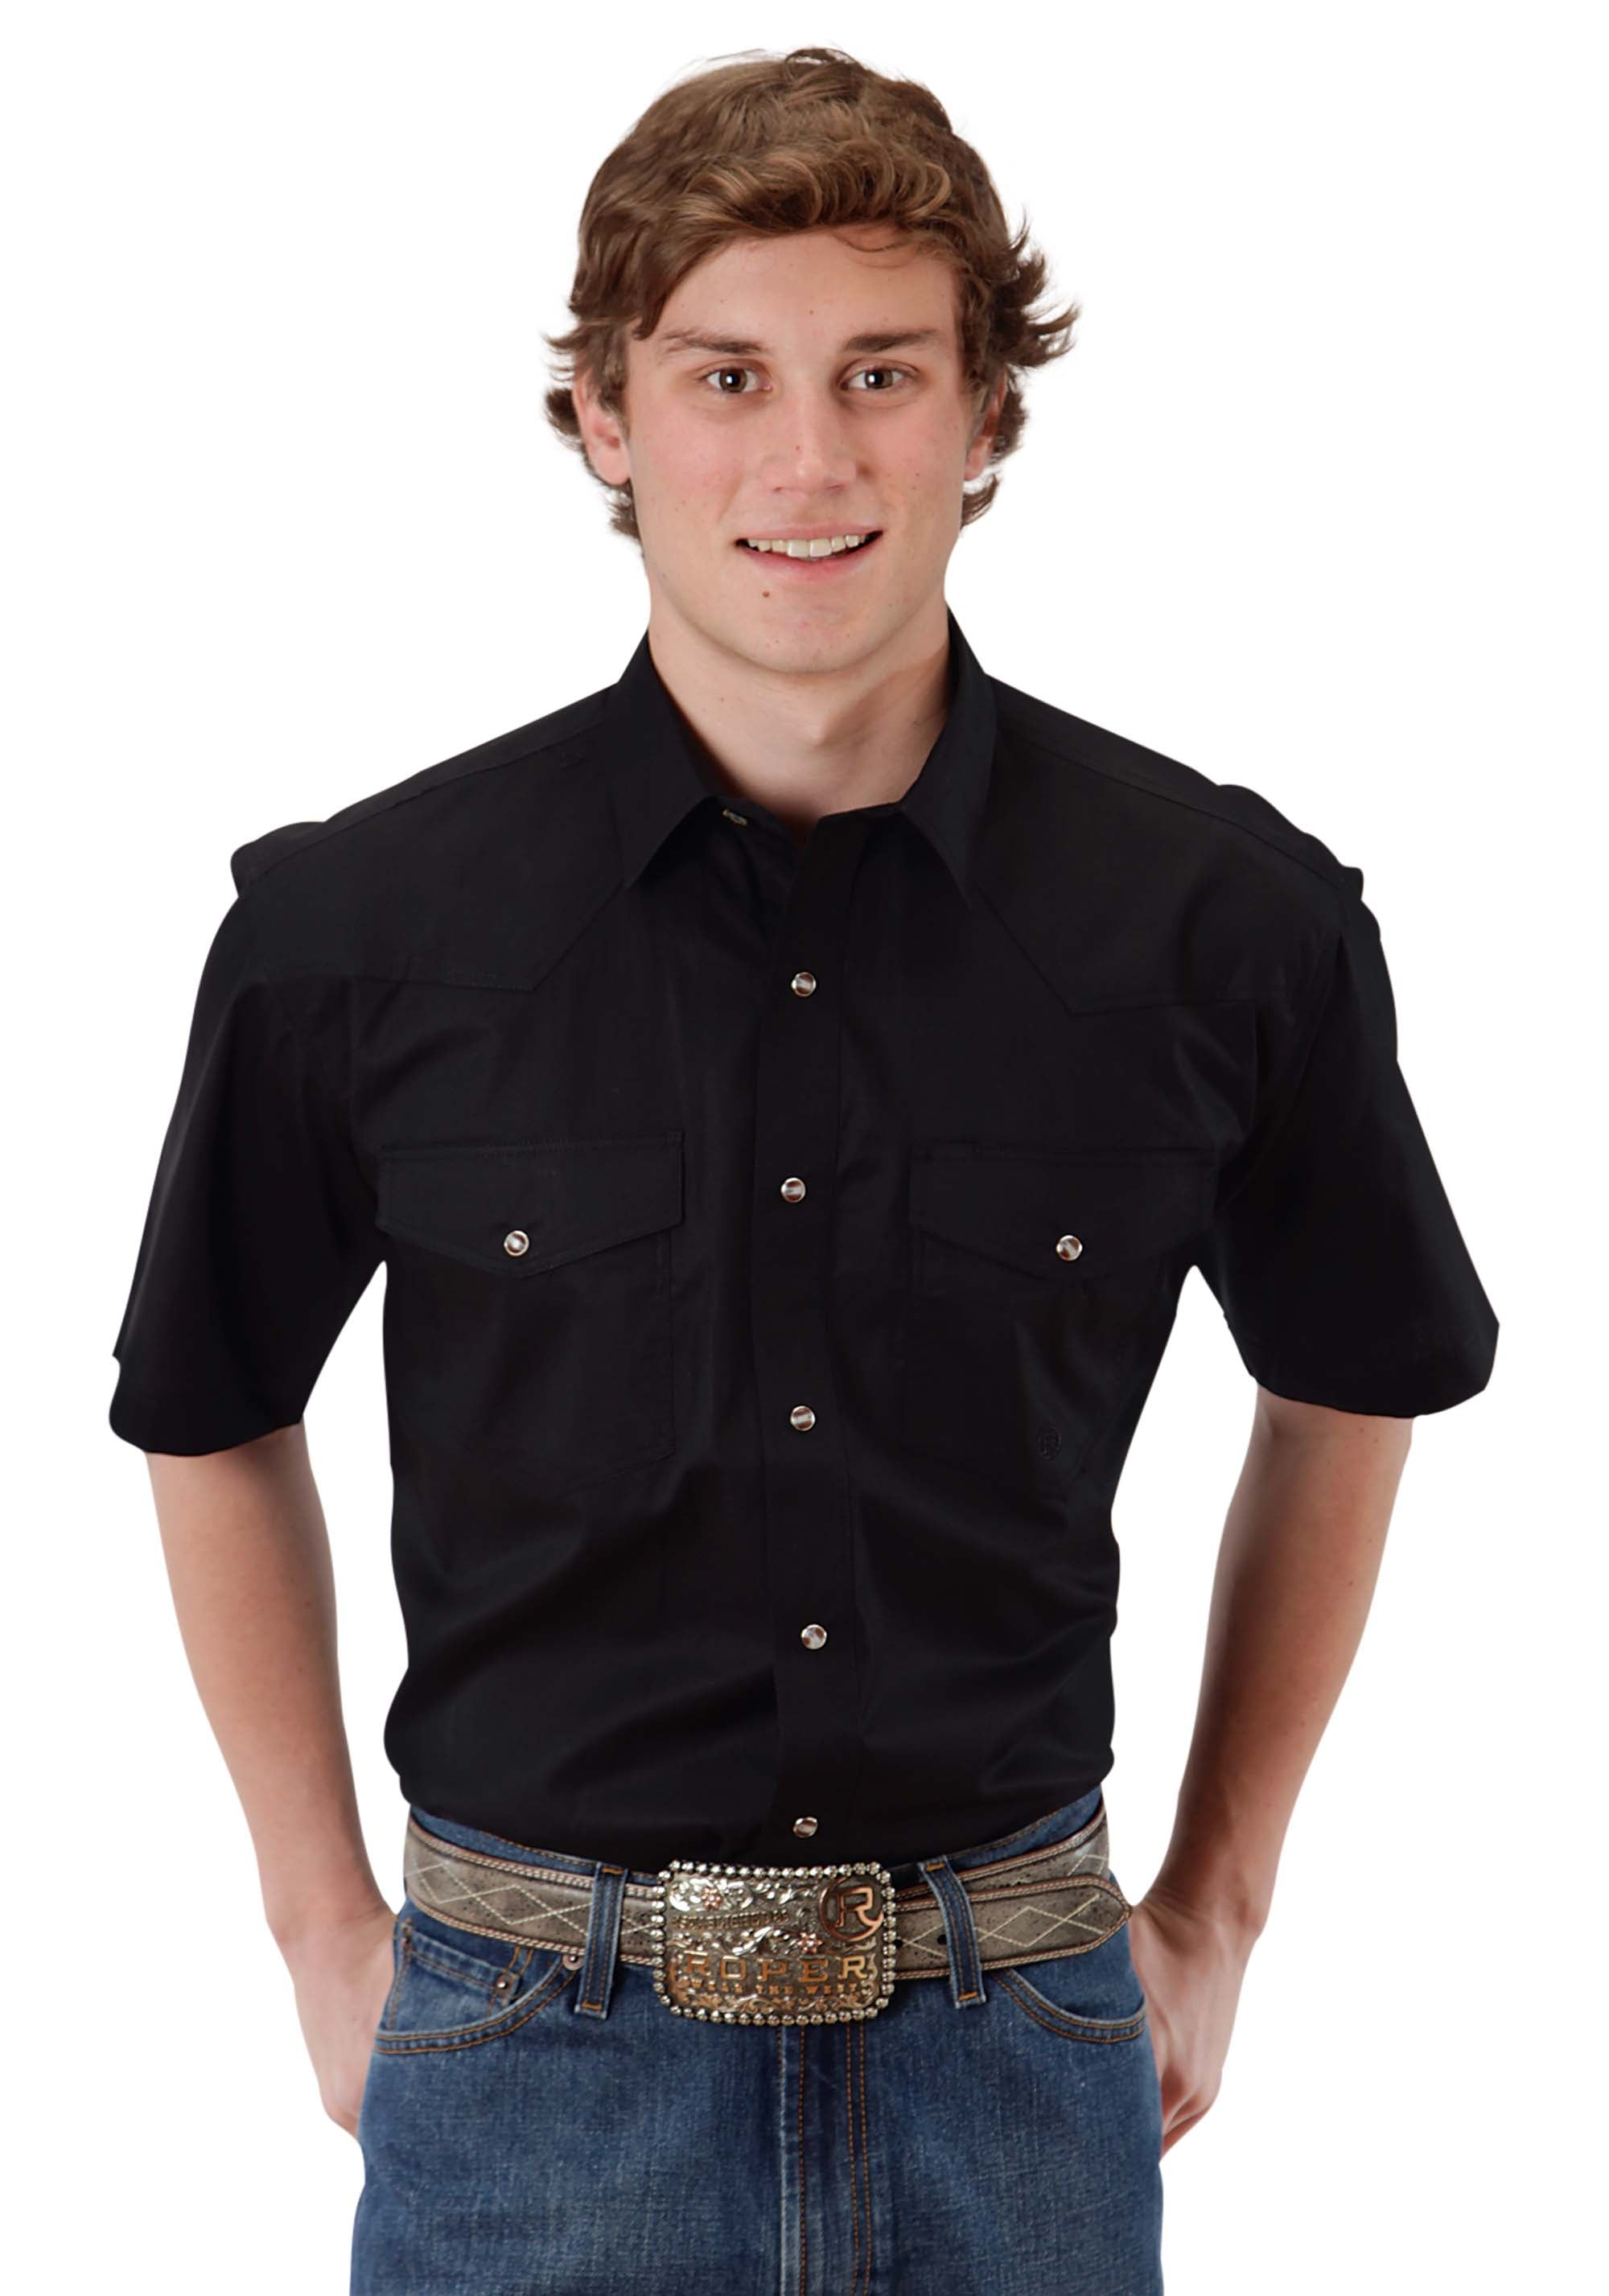 IN STOCK MENS BLACK SOLID POPLIN 1PT BACK YOKE VERGTD IN STOCK INDIVIDUAL